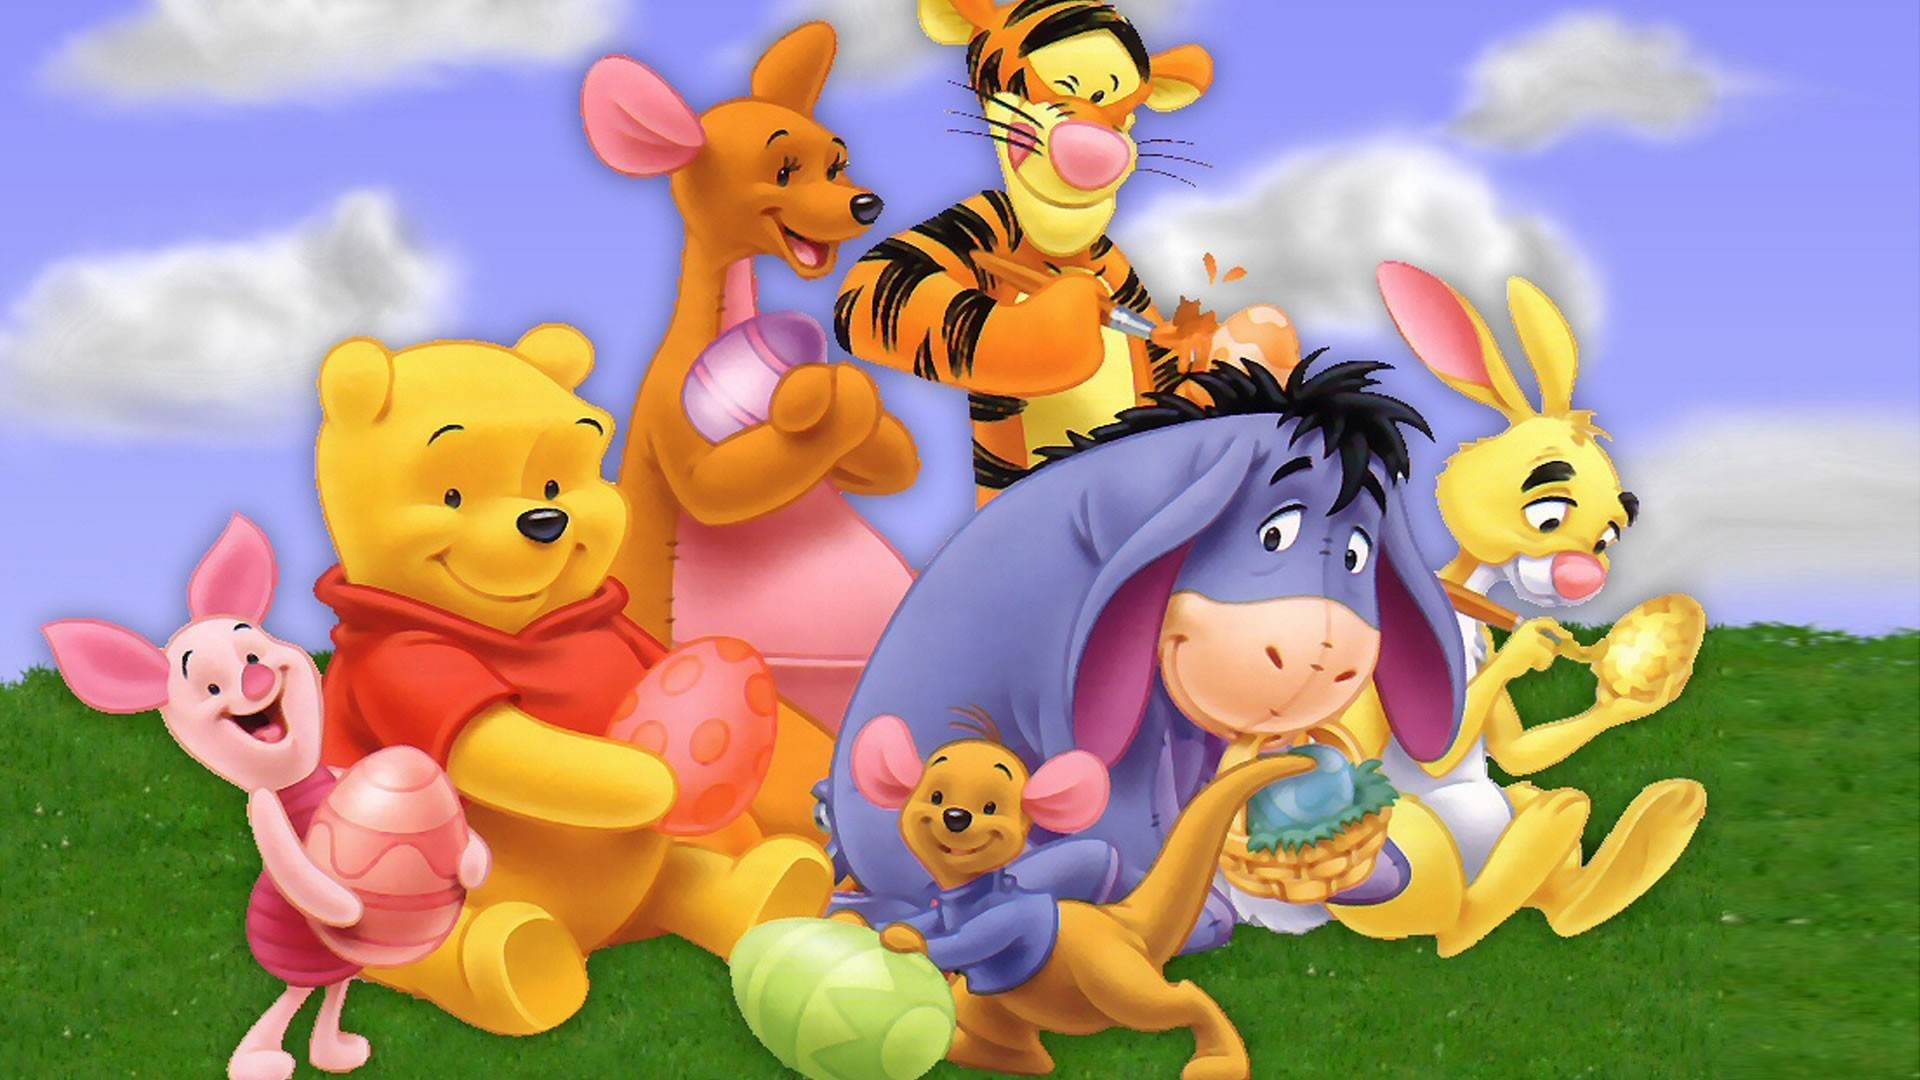 Winnie The Pooh Easter Wallpaper 64 Images